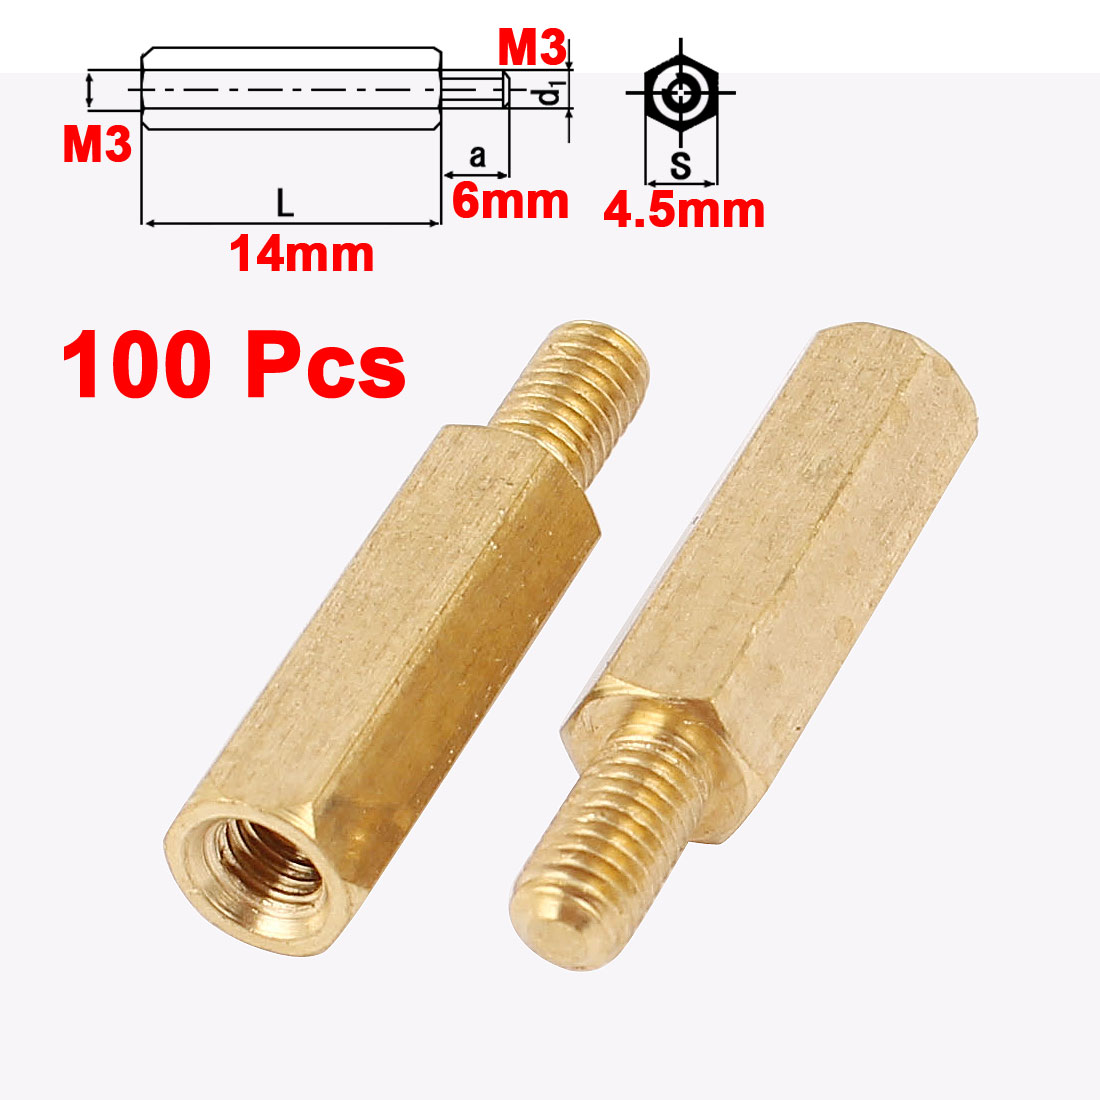 100Pcs M3 Male to Female 14mm+6mm Screw Threaded Brass Hex Standoff Spacer for PCB Motherboard